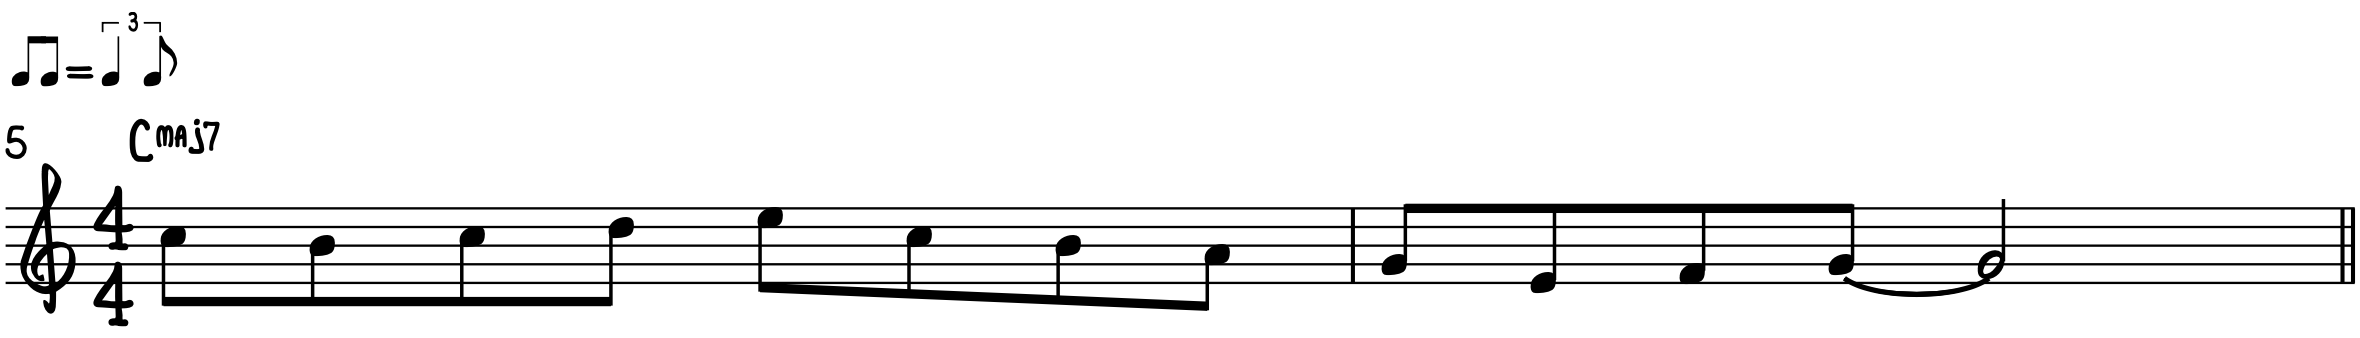 Step 5-Single-Note Melody